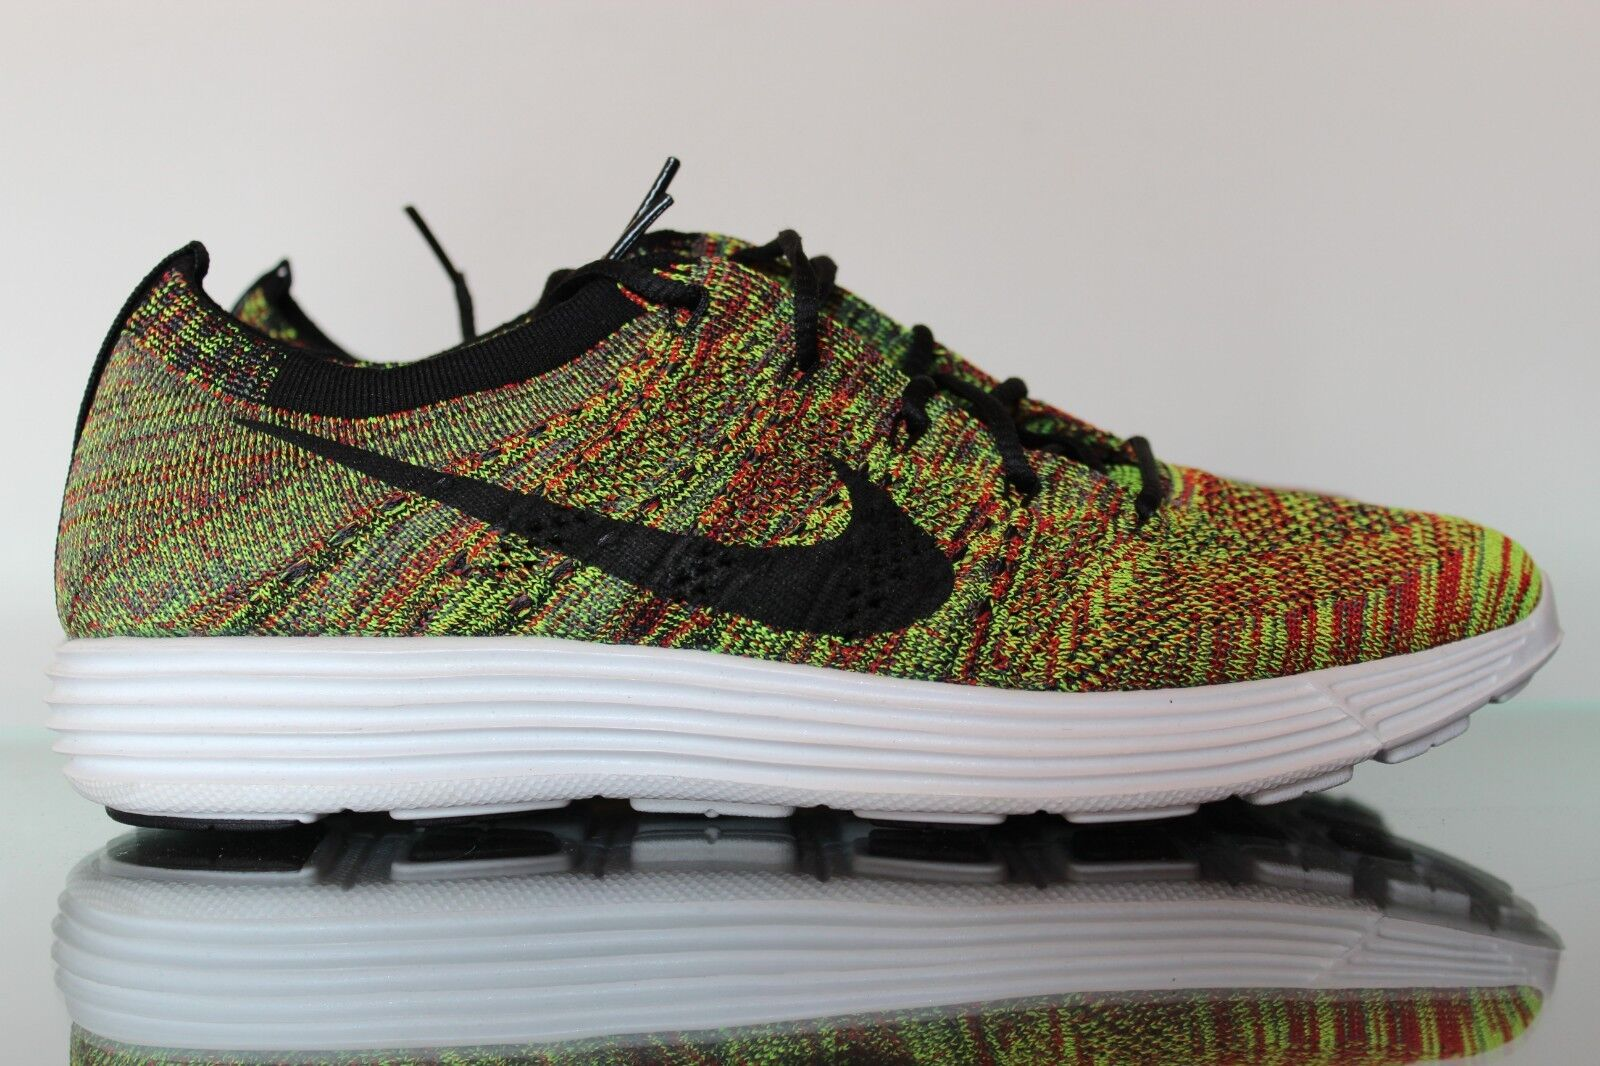 2018 Nike Lunar Flyknit HTM NRG Comfortable Comfortable and good-looking